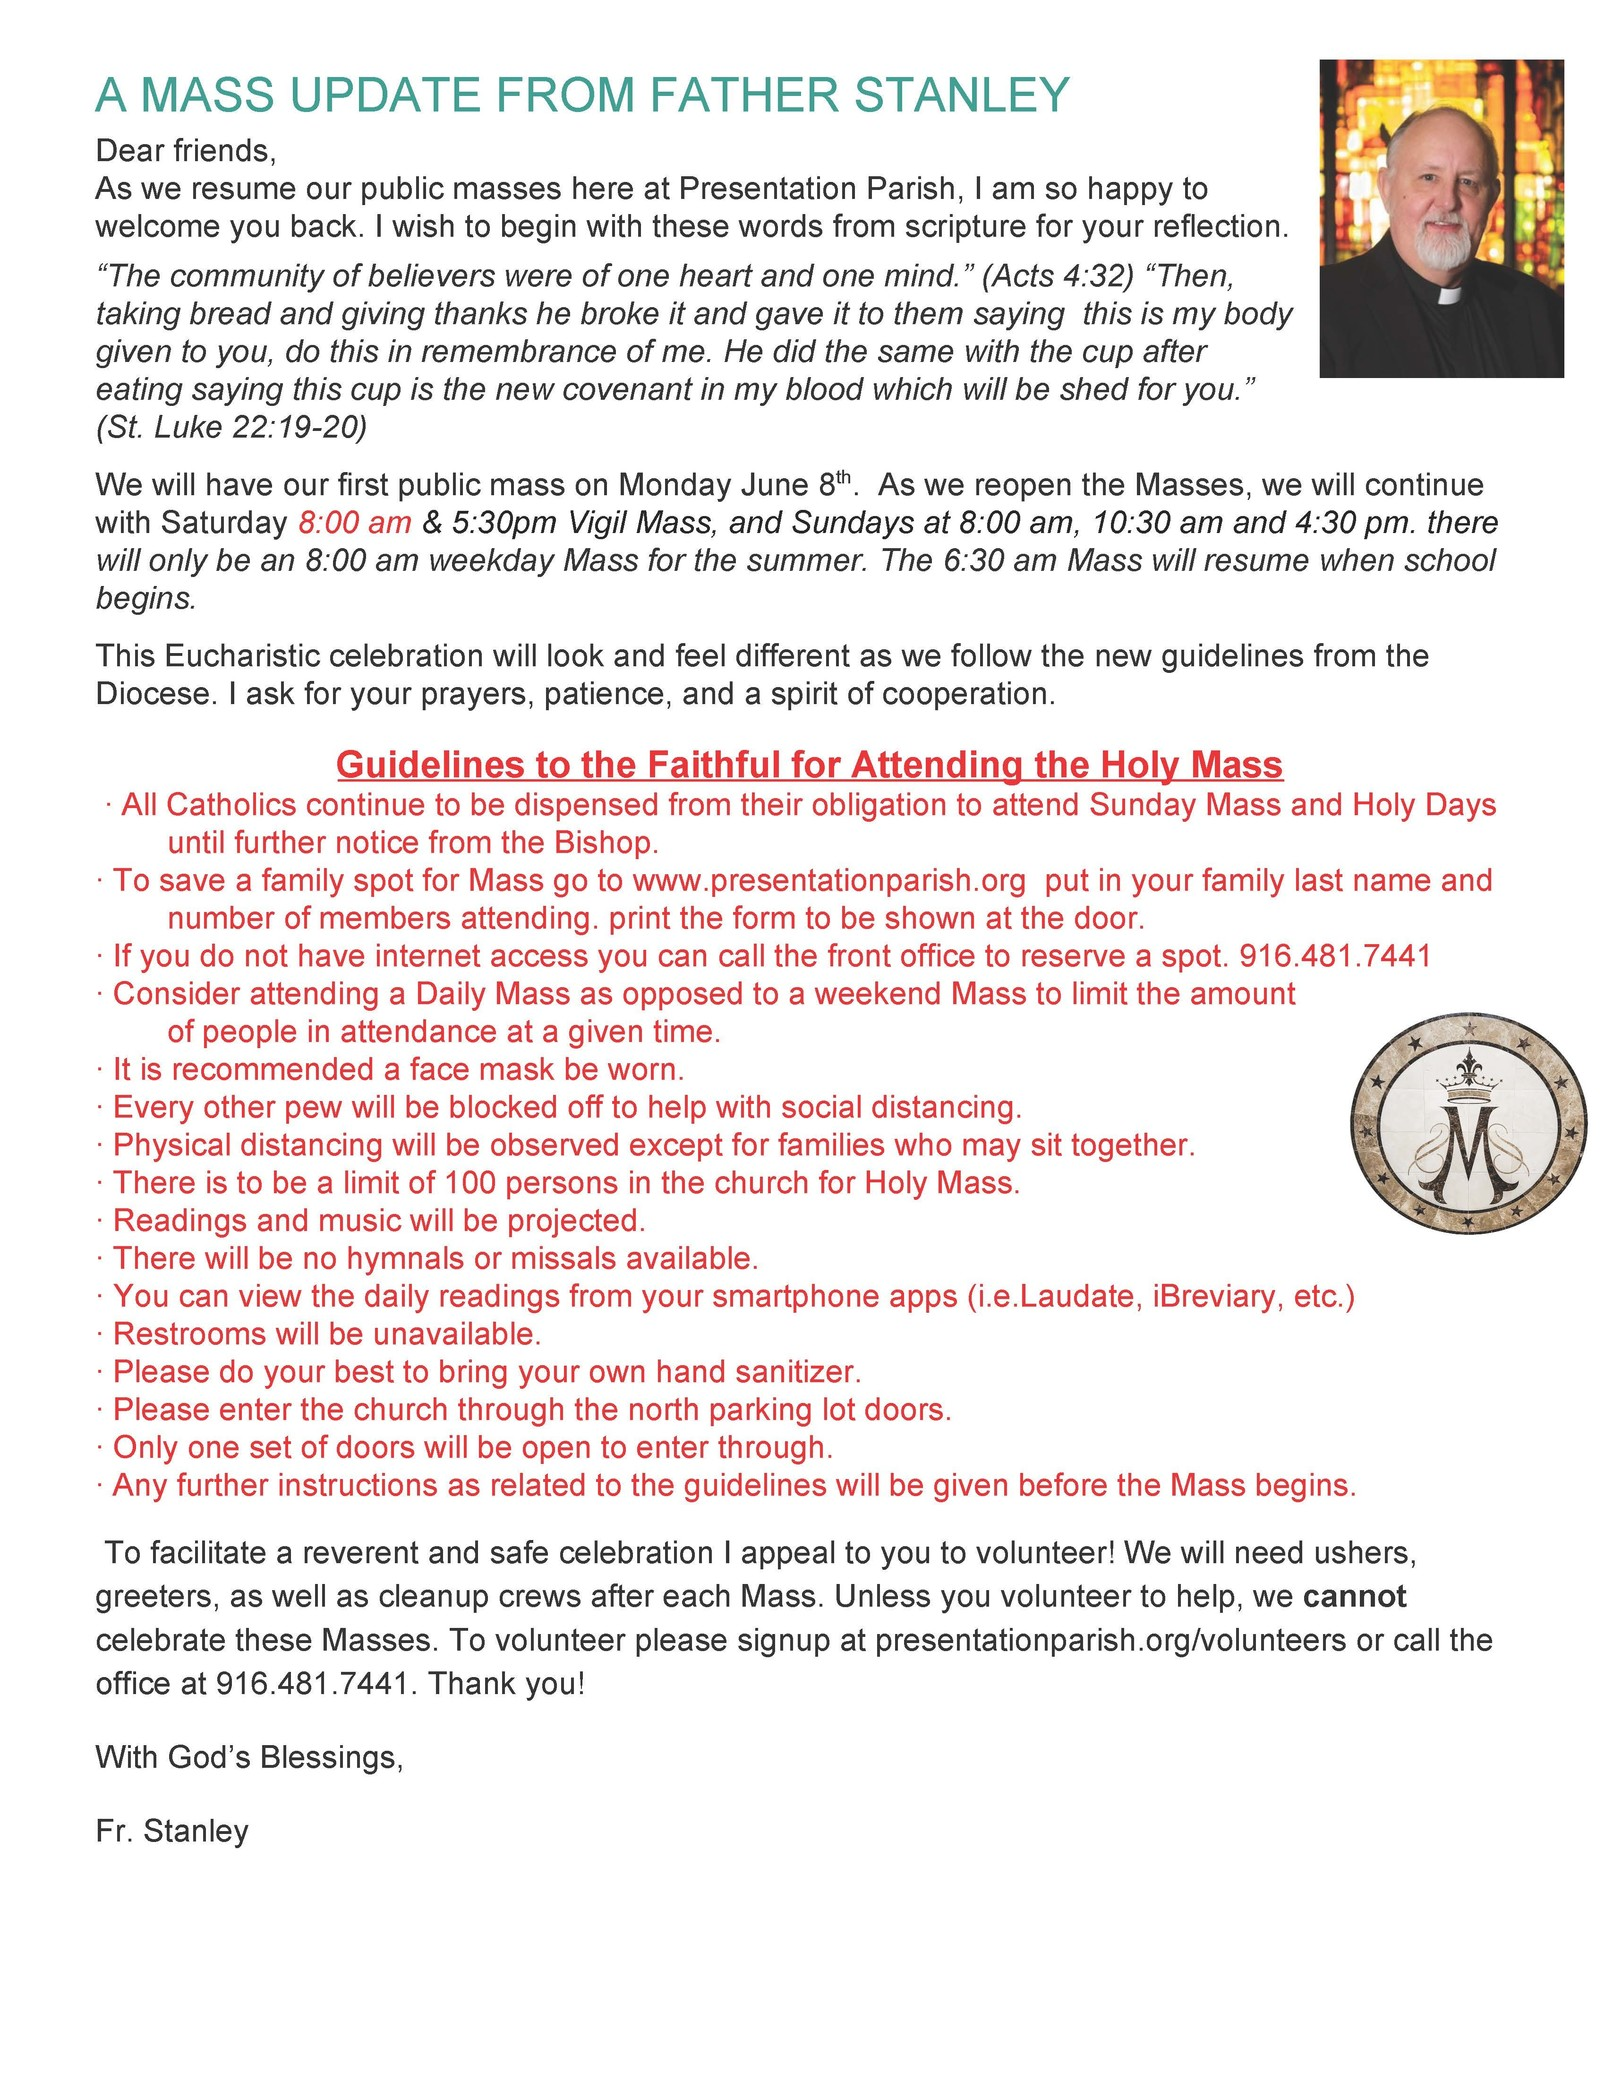 Fr. Stanley Mass Update From The Bulletin